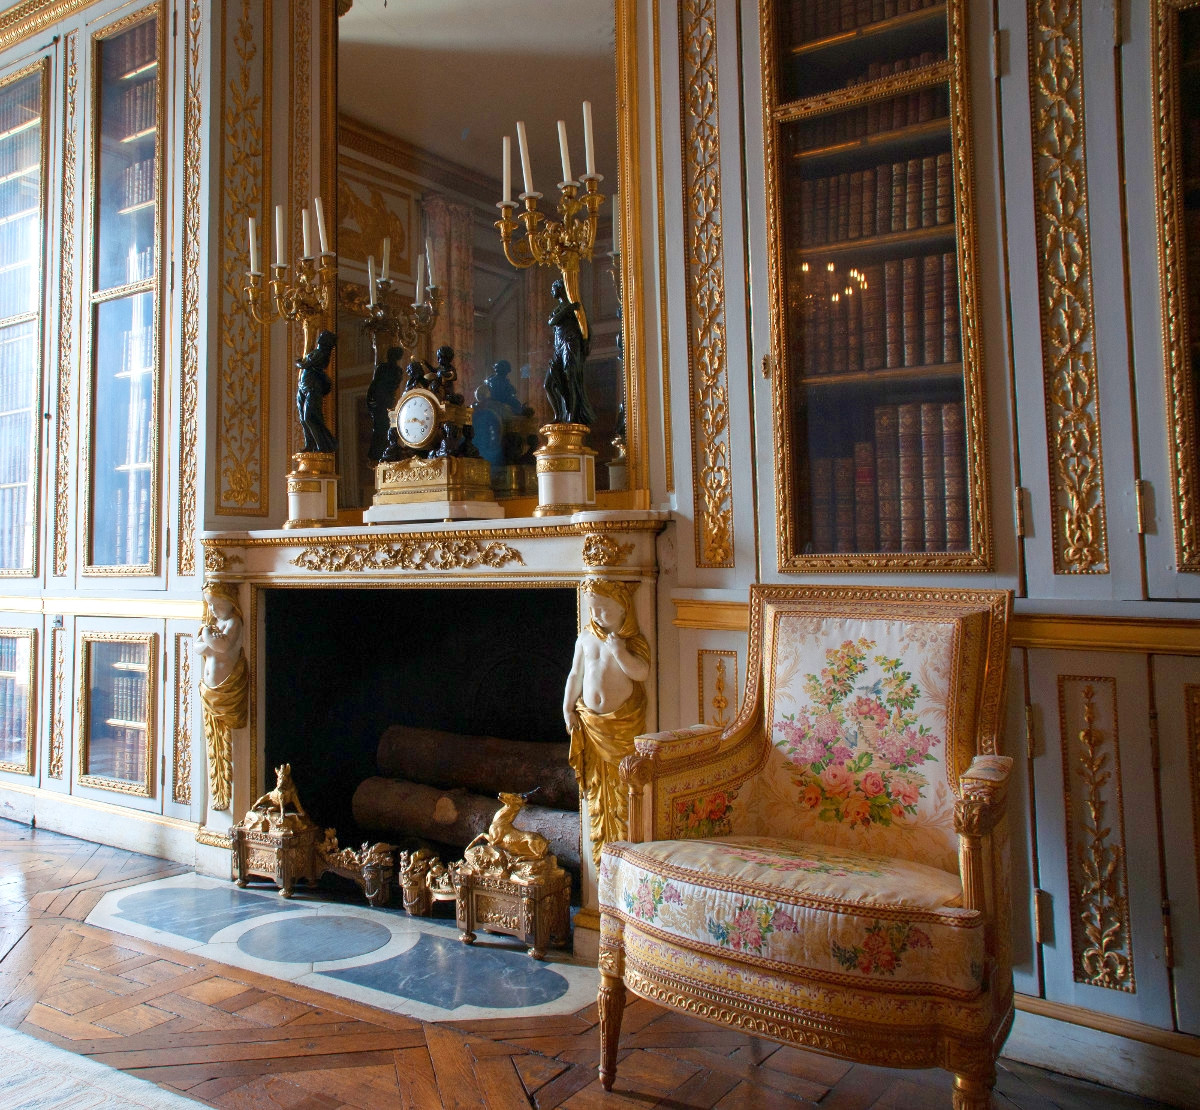 Small apartment of the king - Louis XVI Library. Credit Fanny Schertzer